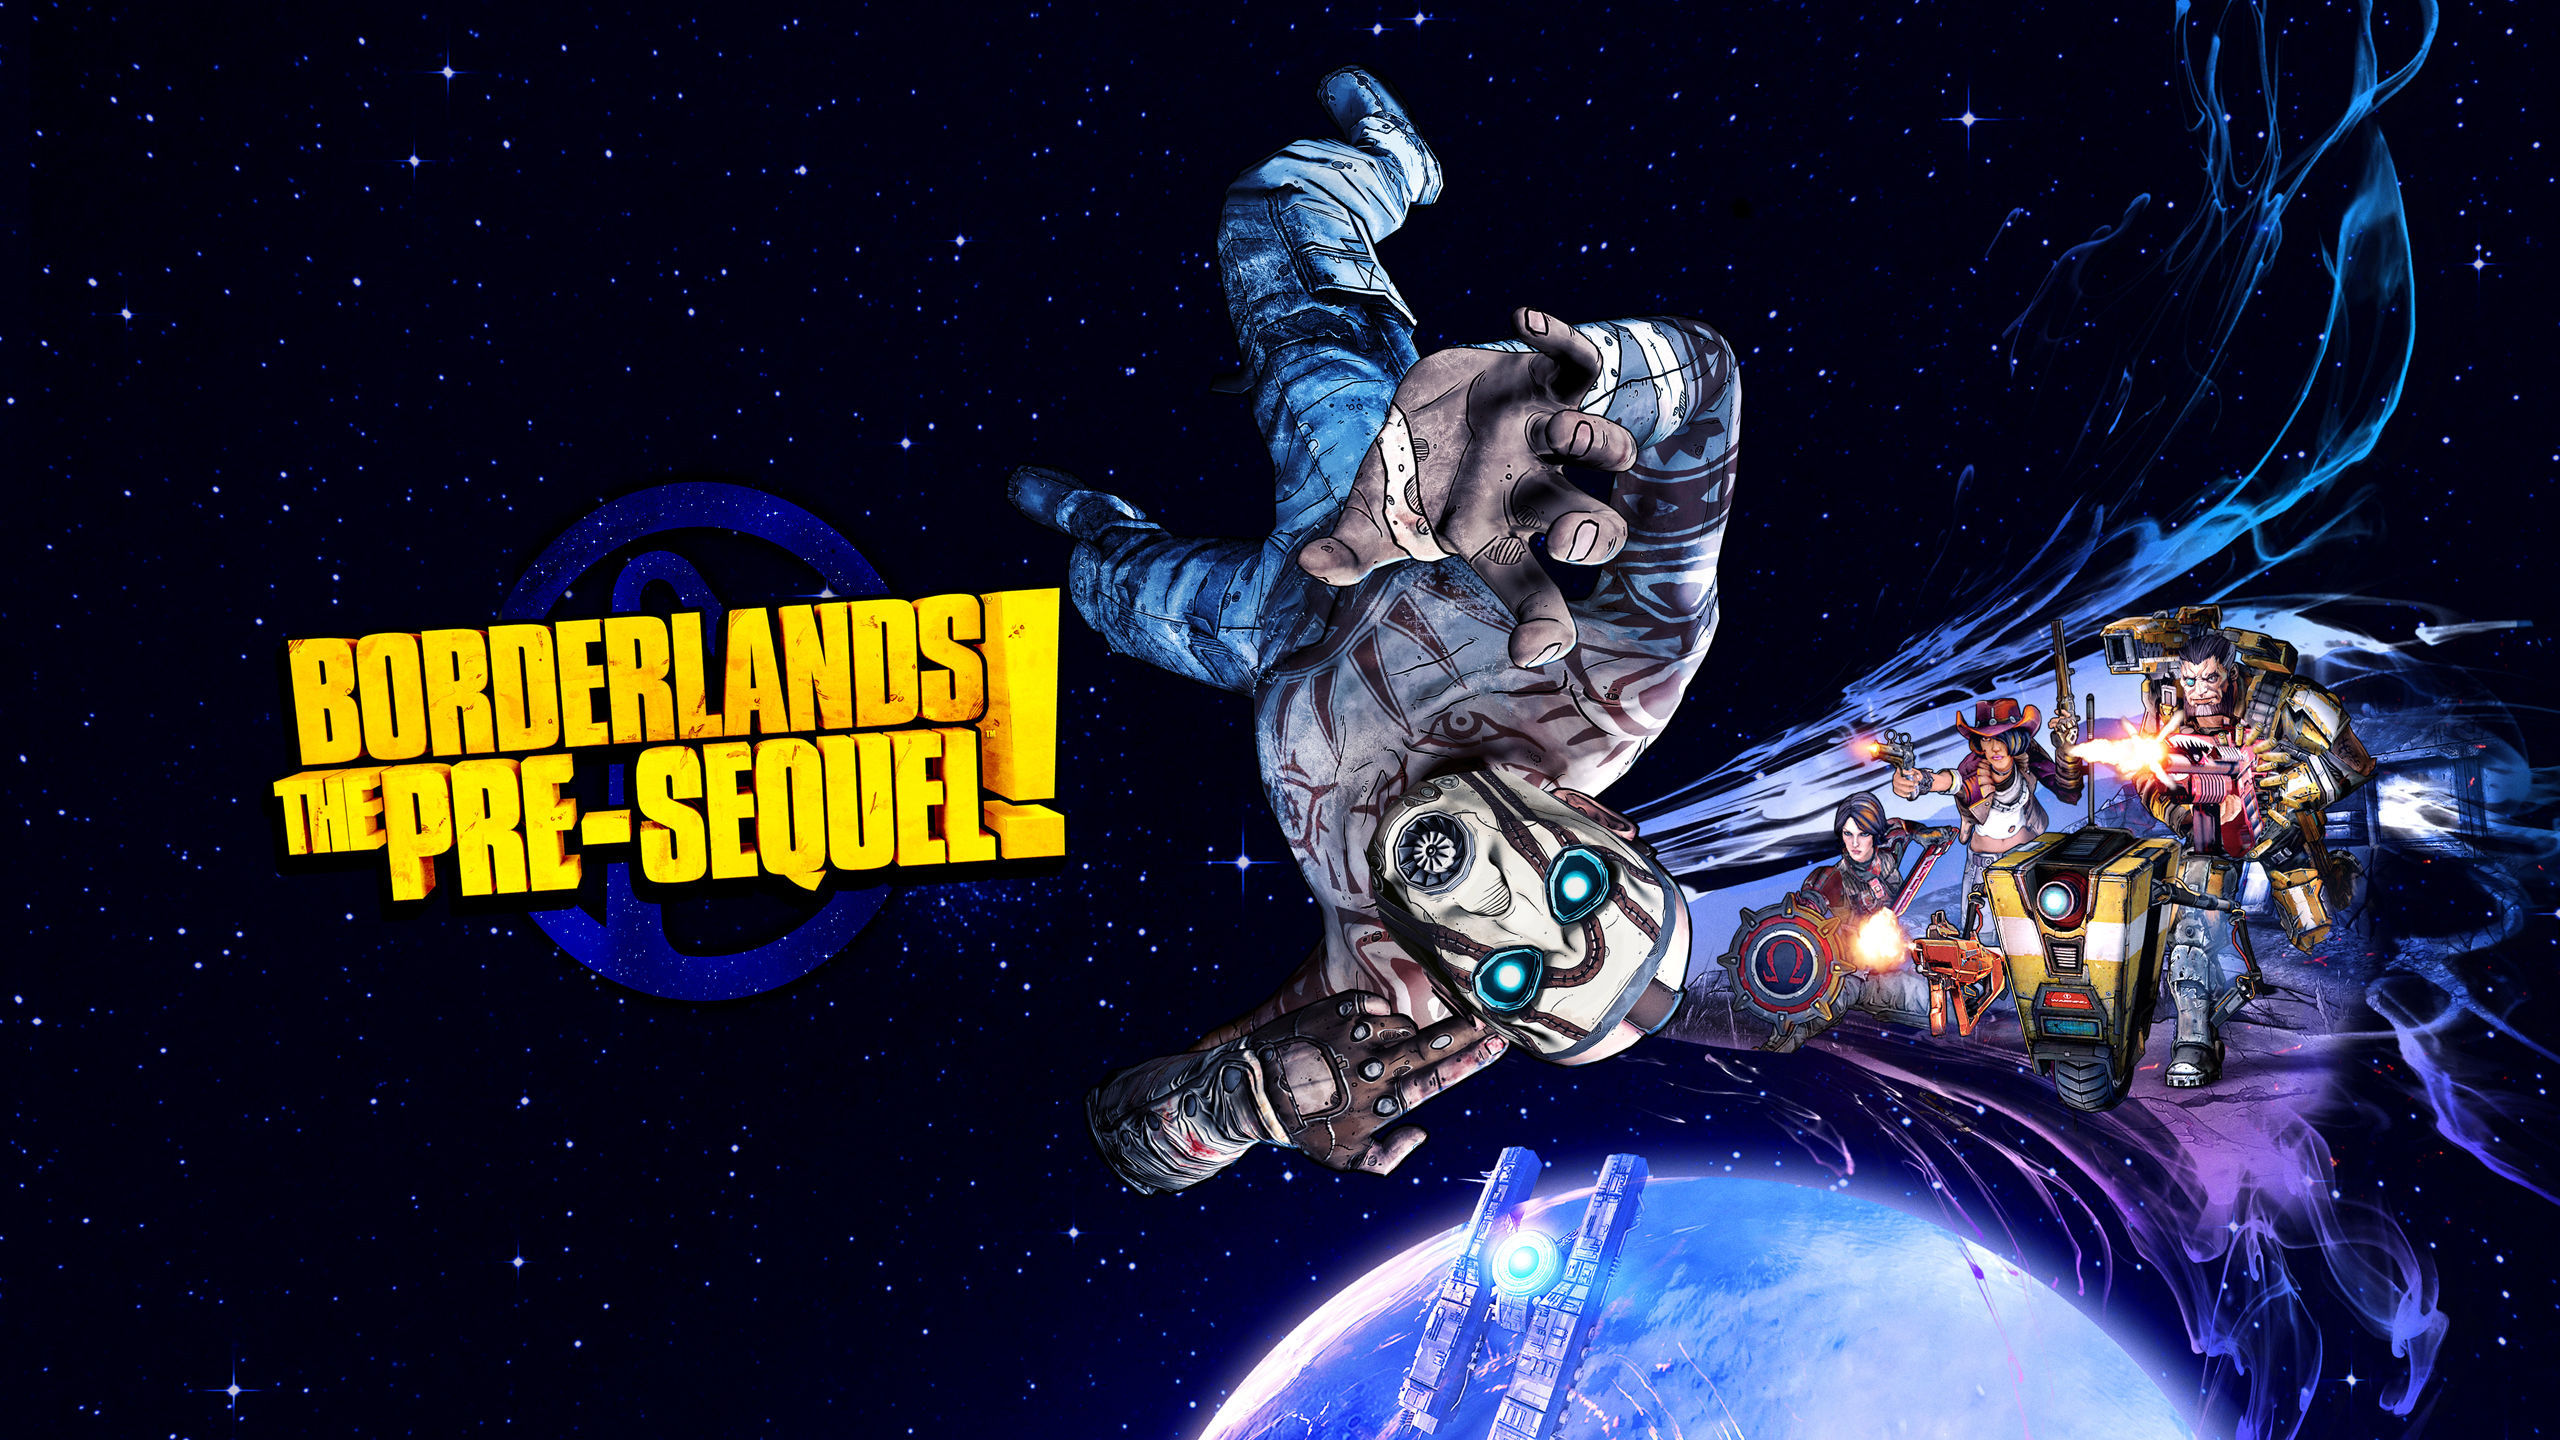 Y... ¿Cuales dos elementos se incluyeron en Borderlands: The Pre Sequel?